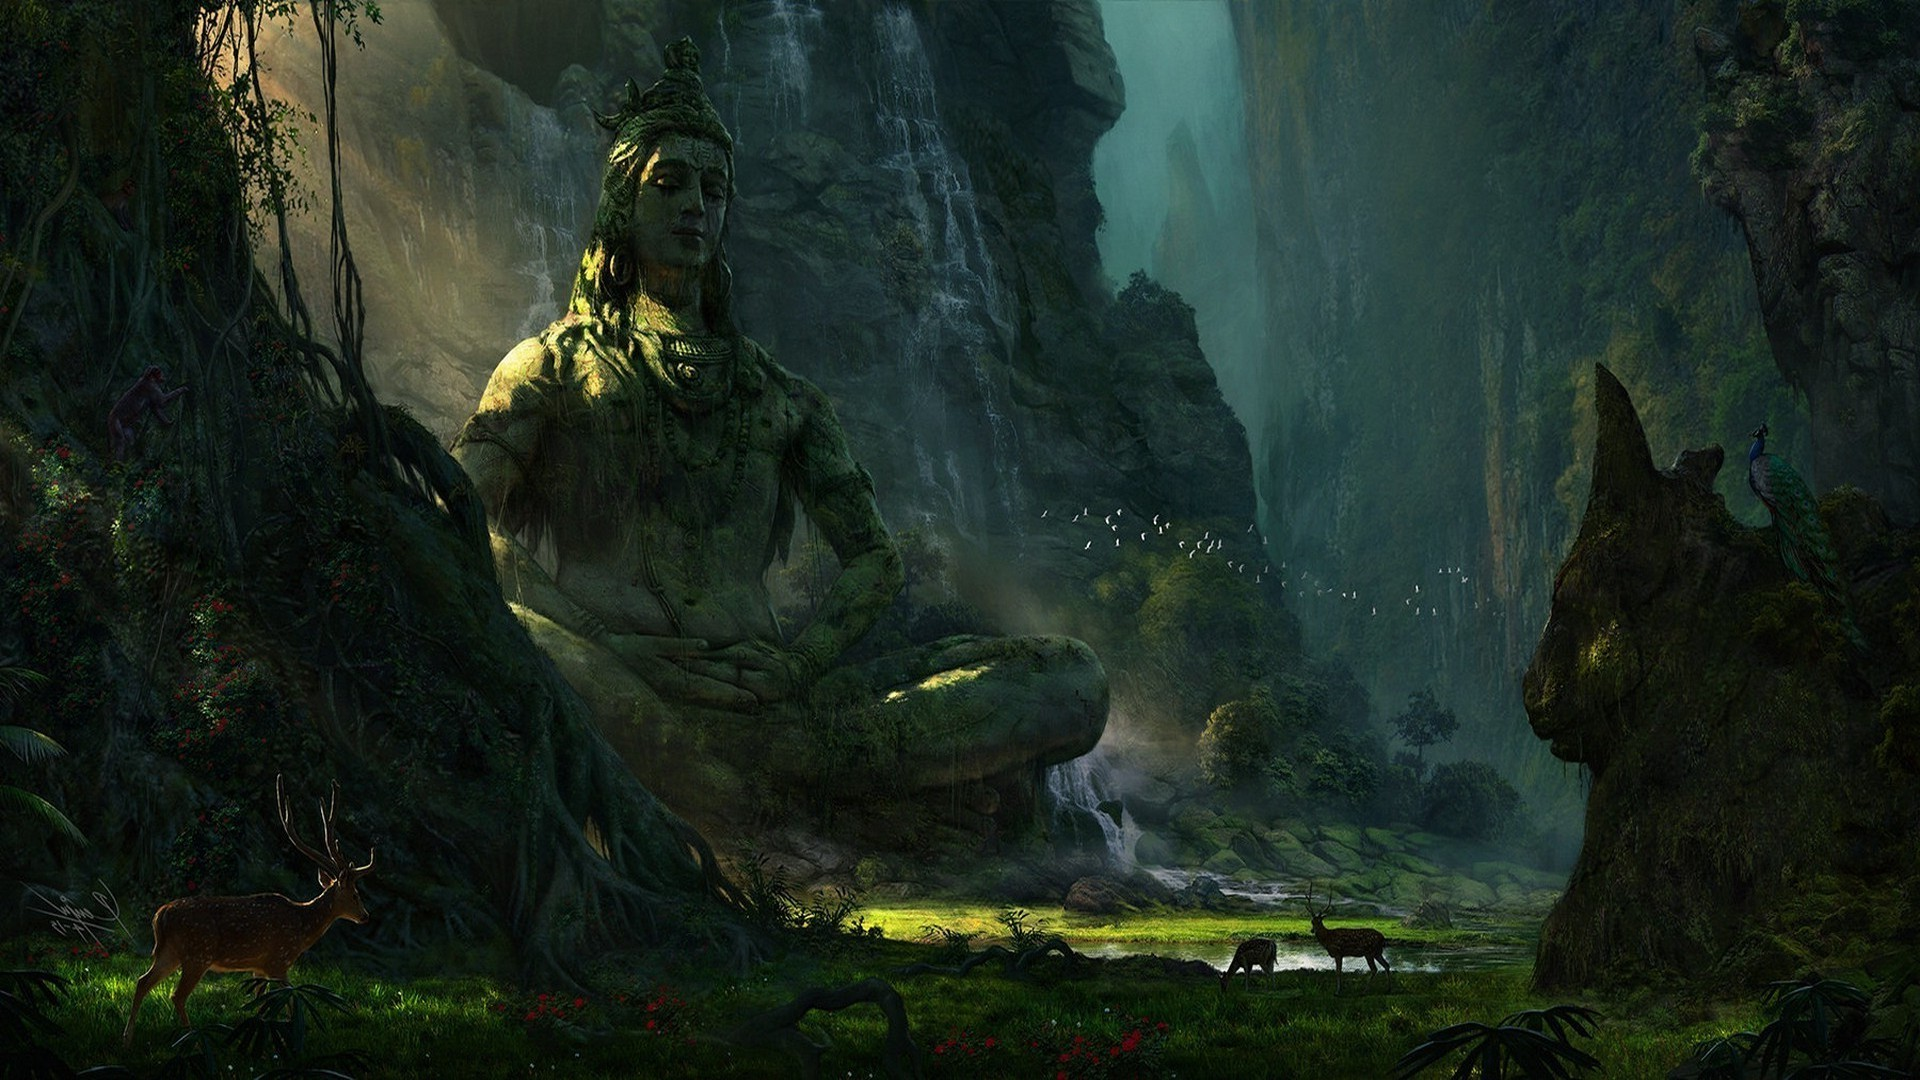 Shivaji 3d Wallpapers Mountain Deer Landscape Earth Statue Lake Waterfall